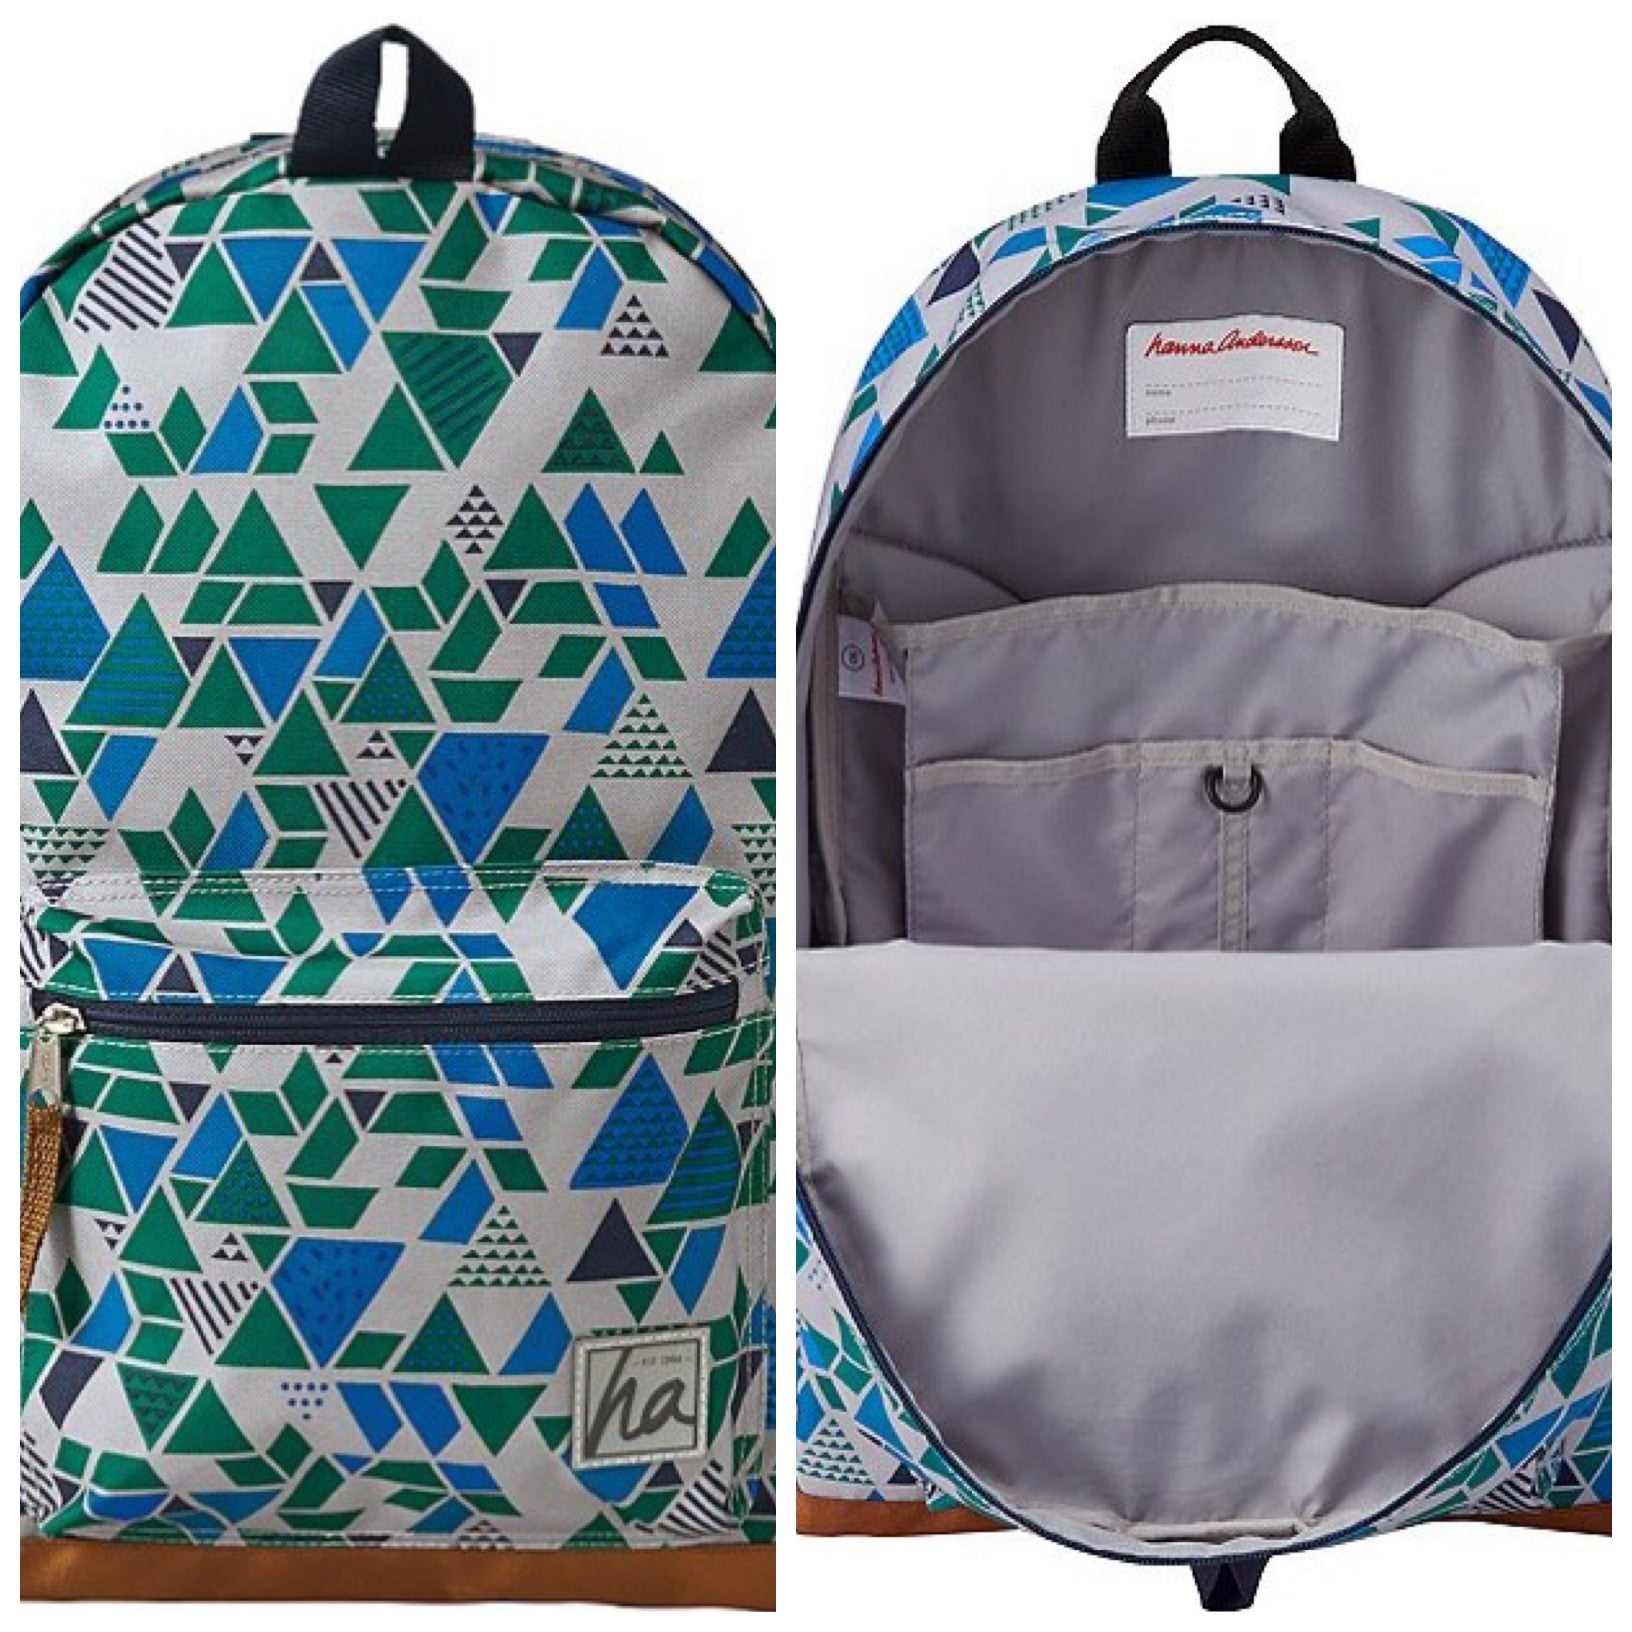 Hanna Andersson, backpack, kids backpack, geometric backpack, green blue gray backpack, backpack with pockets, boys backpack, unisex backpack, back to school, school prep